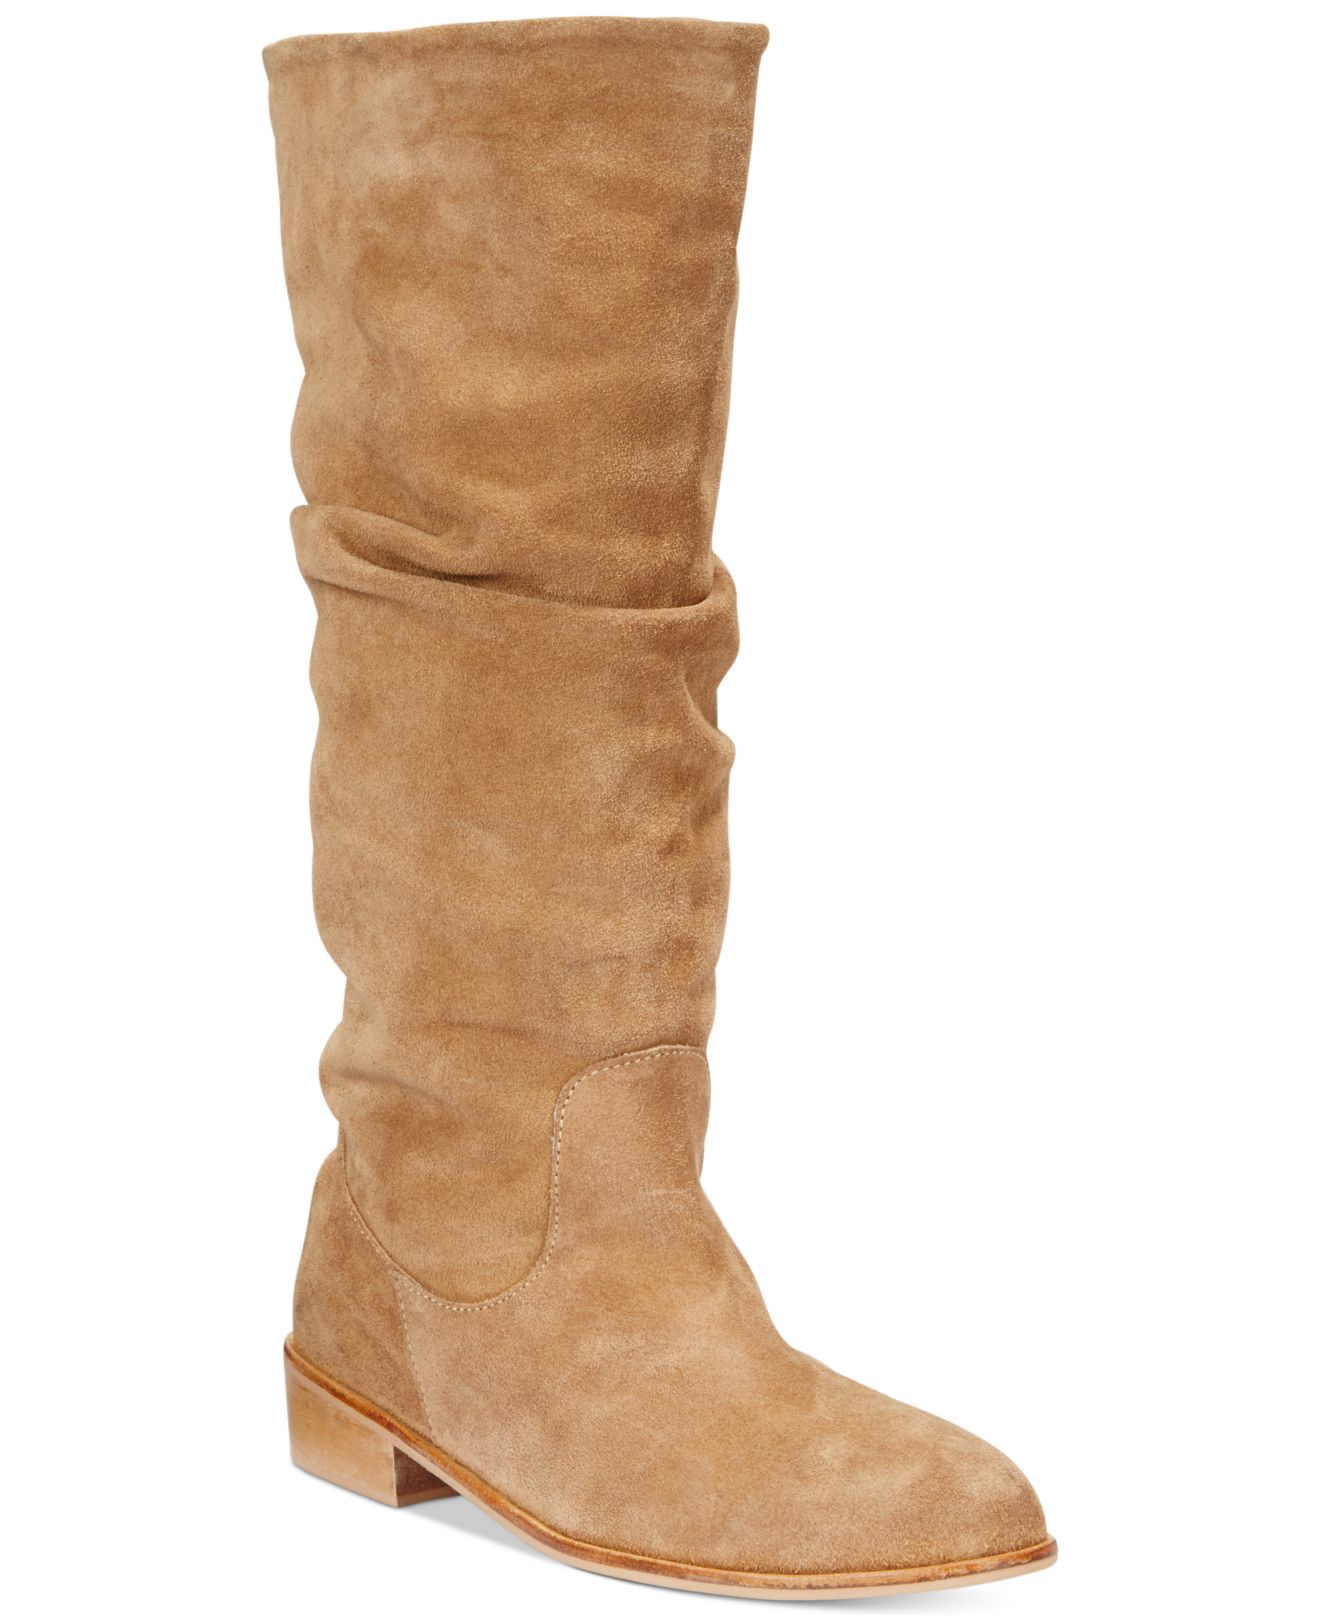 charles by charles david joan boots in beige sand suede